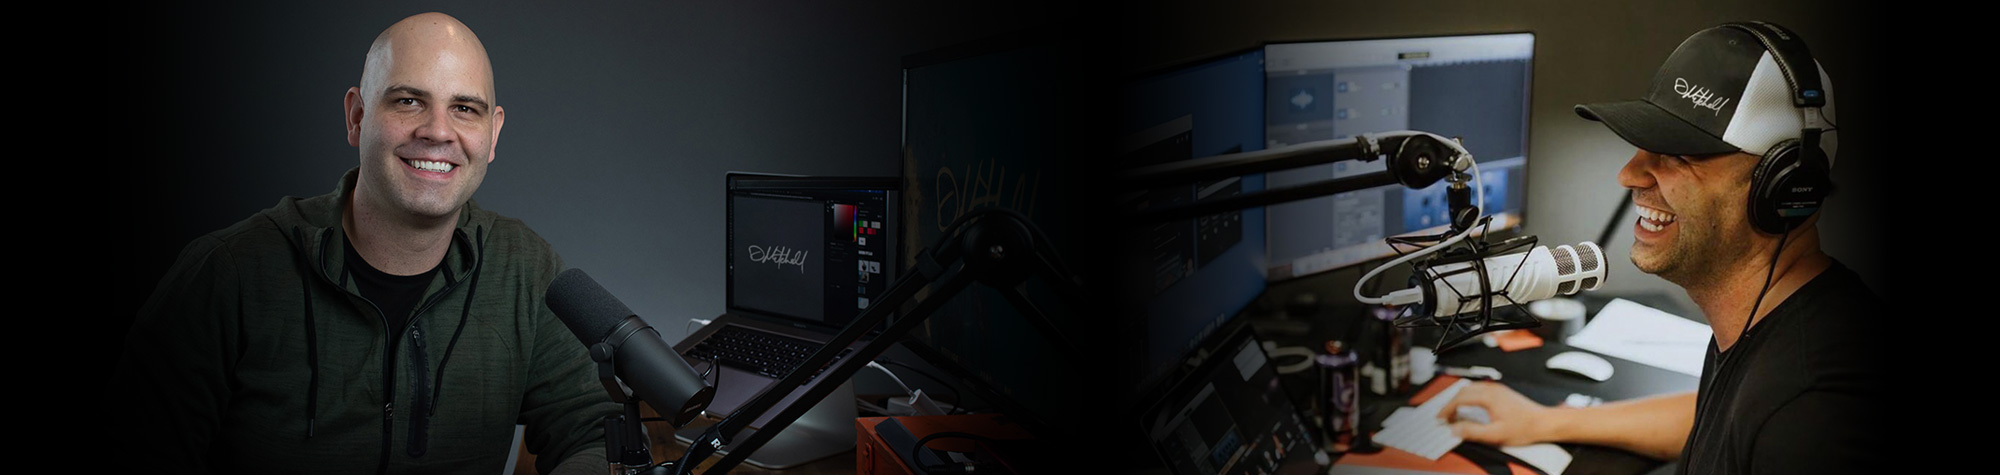 How I Set Up My Home Office To Record My YouTube Graphic Design Tutorials and Online Courses